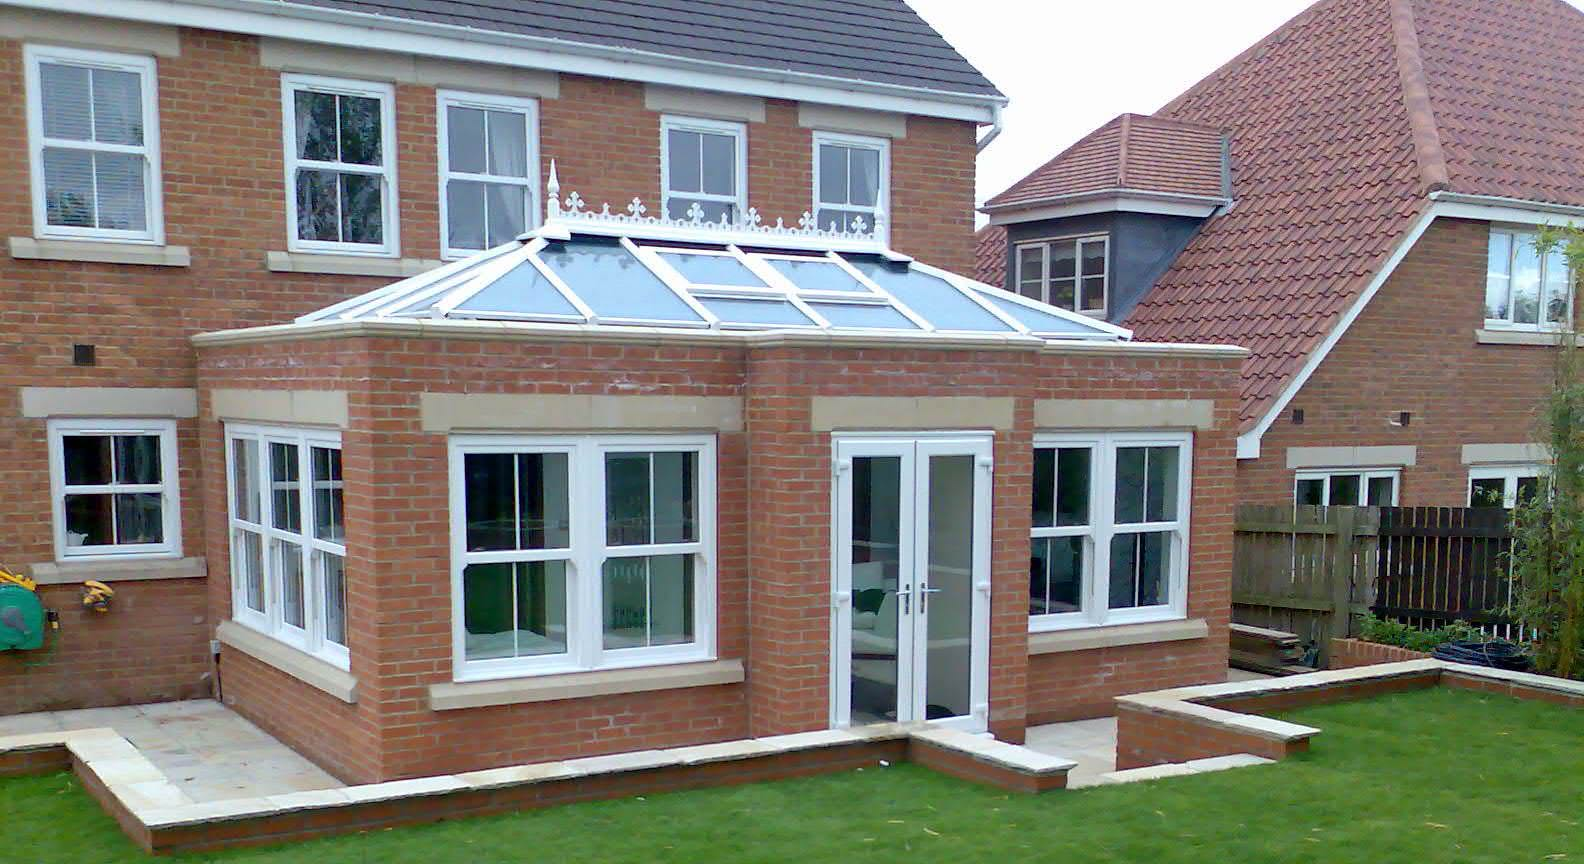 Orangeries are making a comeback orangery ideas for Orangery ideas uk